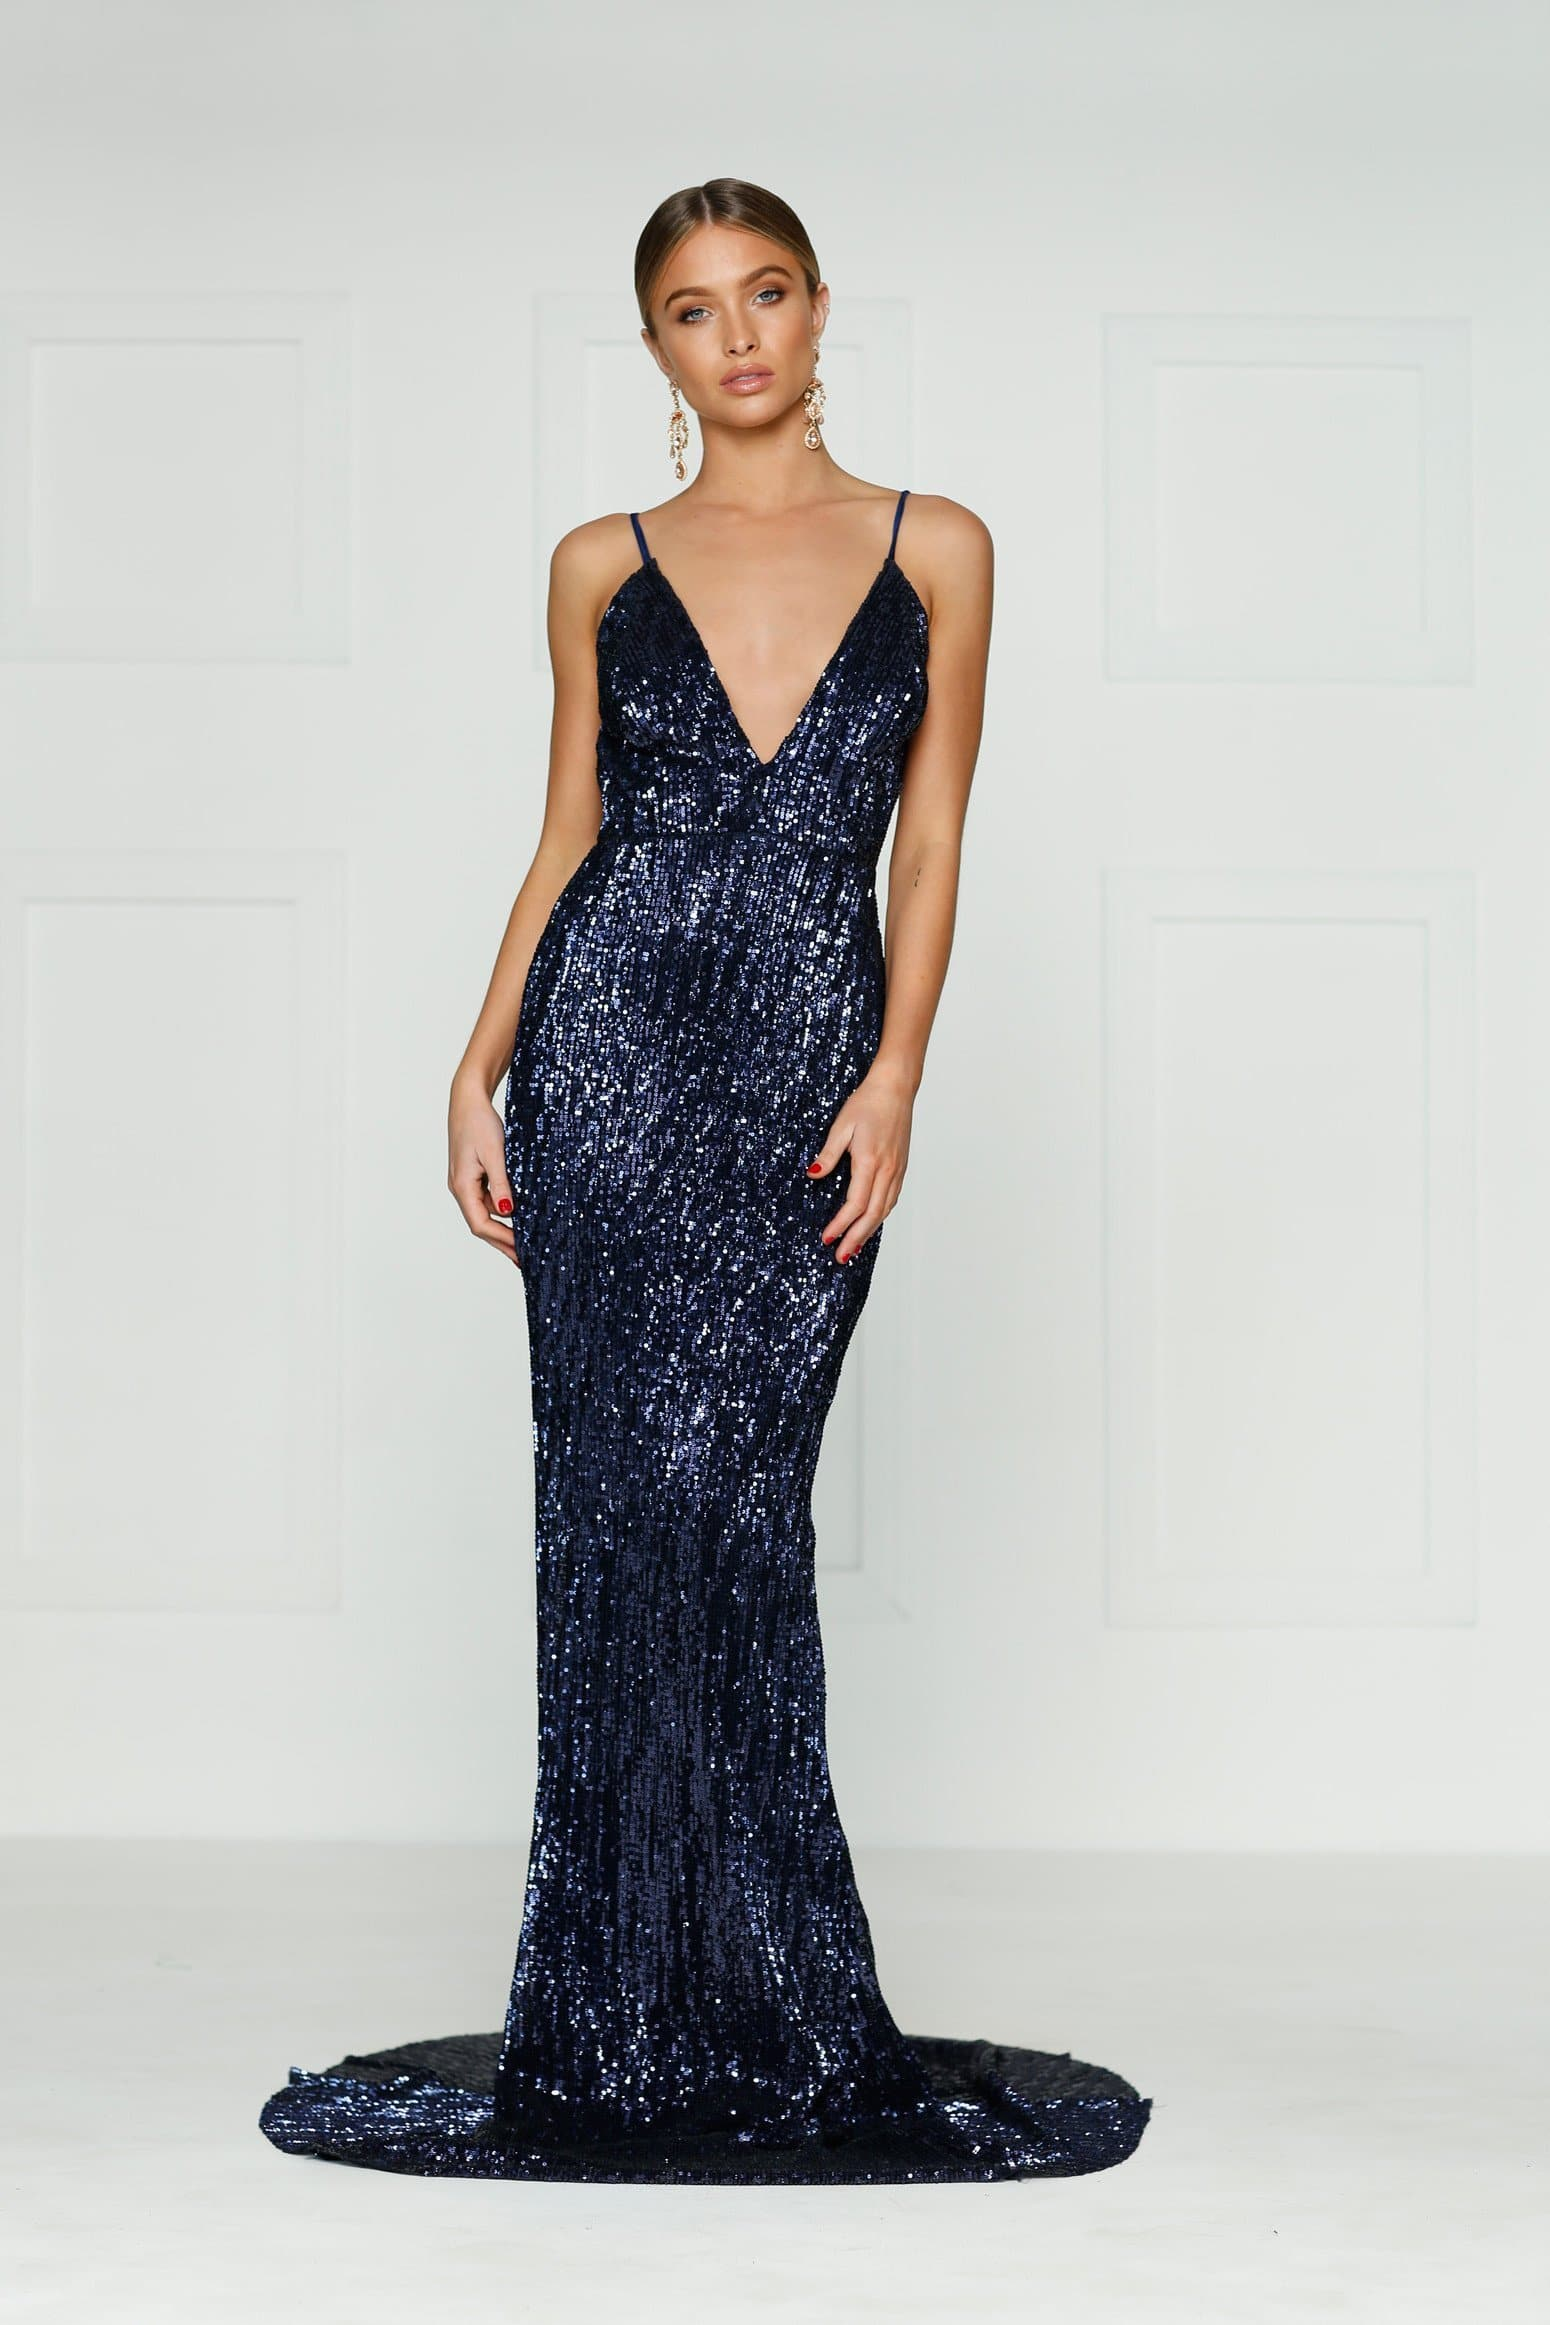 Cynthia Formal Dress - Navy Sparkling V Neck Low Back Maxi Prom Gown